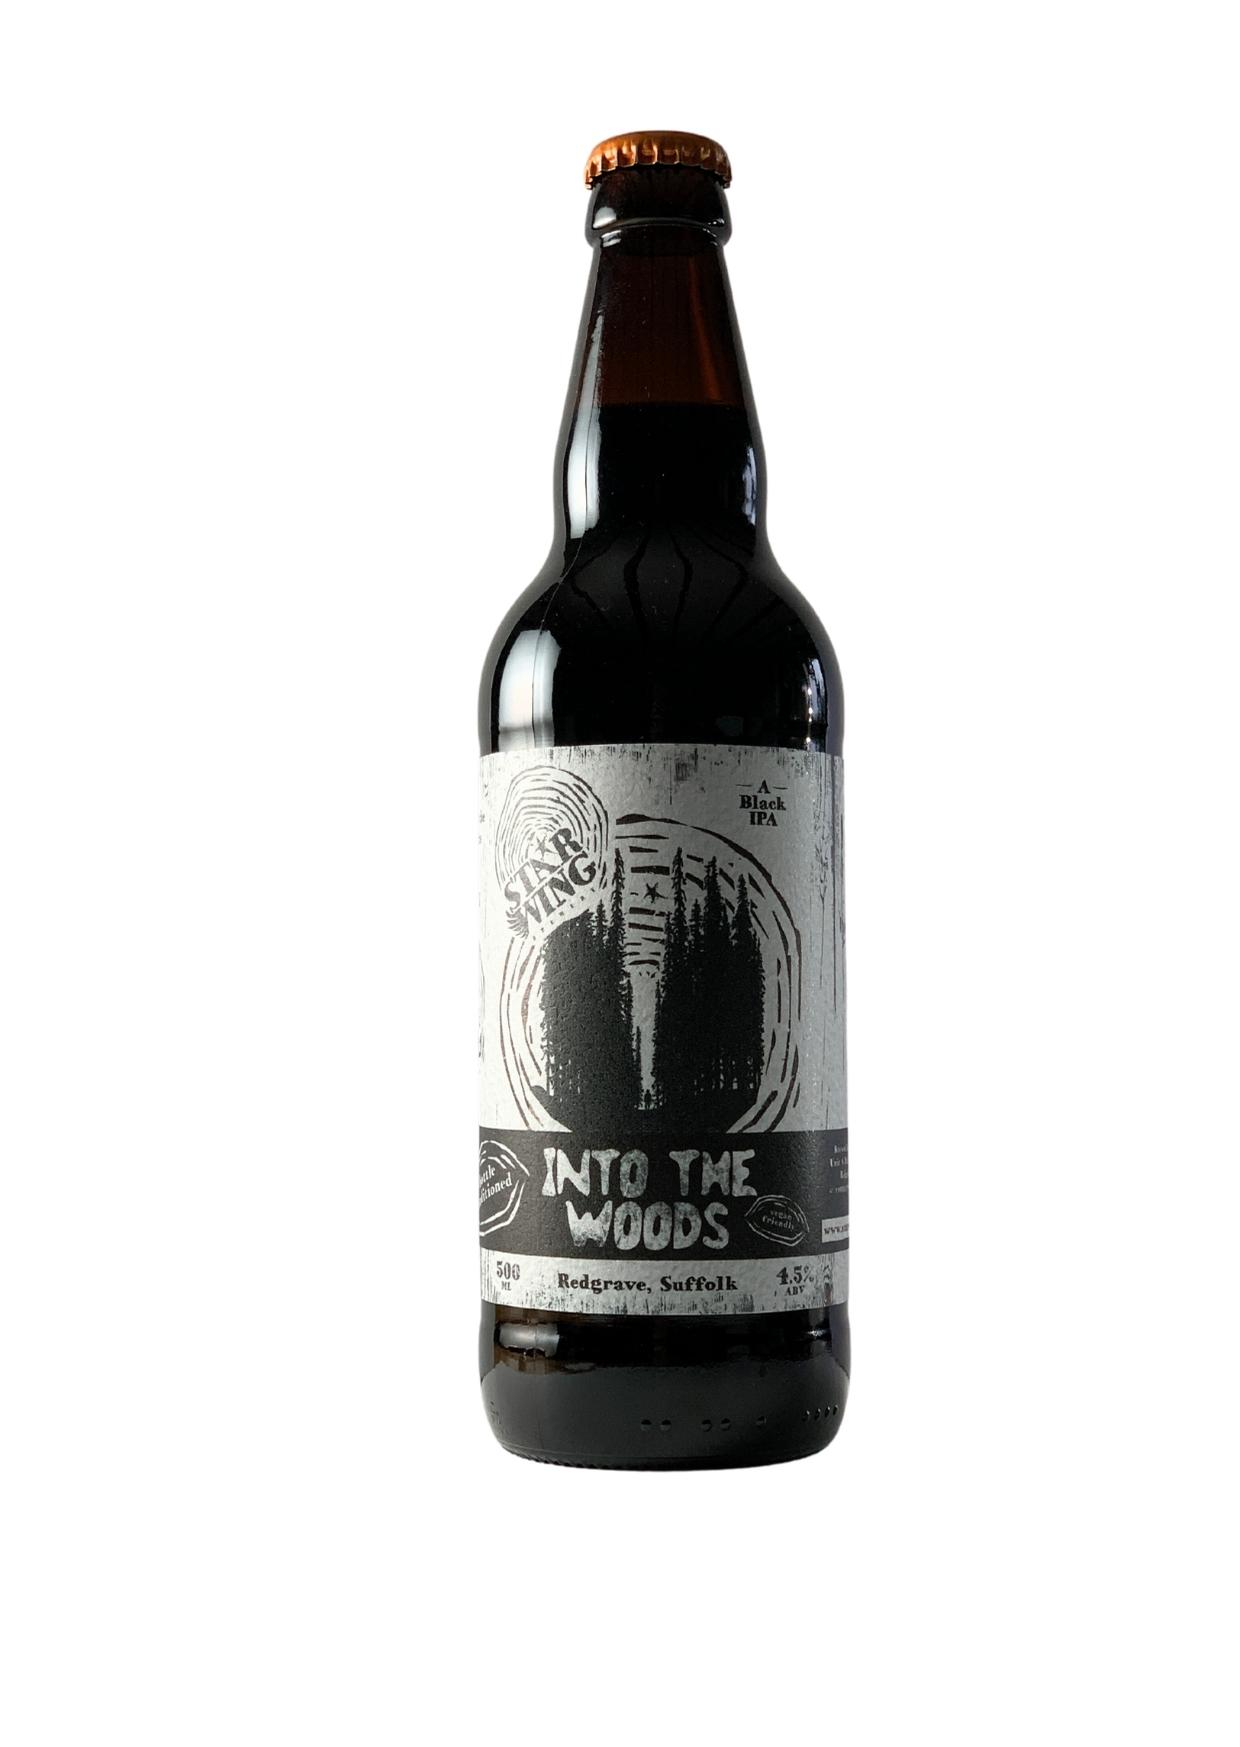 A 500ml bottle of delicious Star Wing Brewery's Into the Woods, 4.5% Black IPA